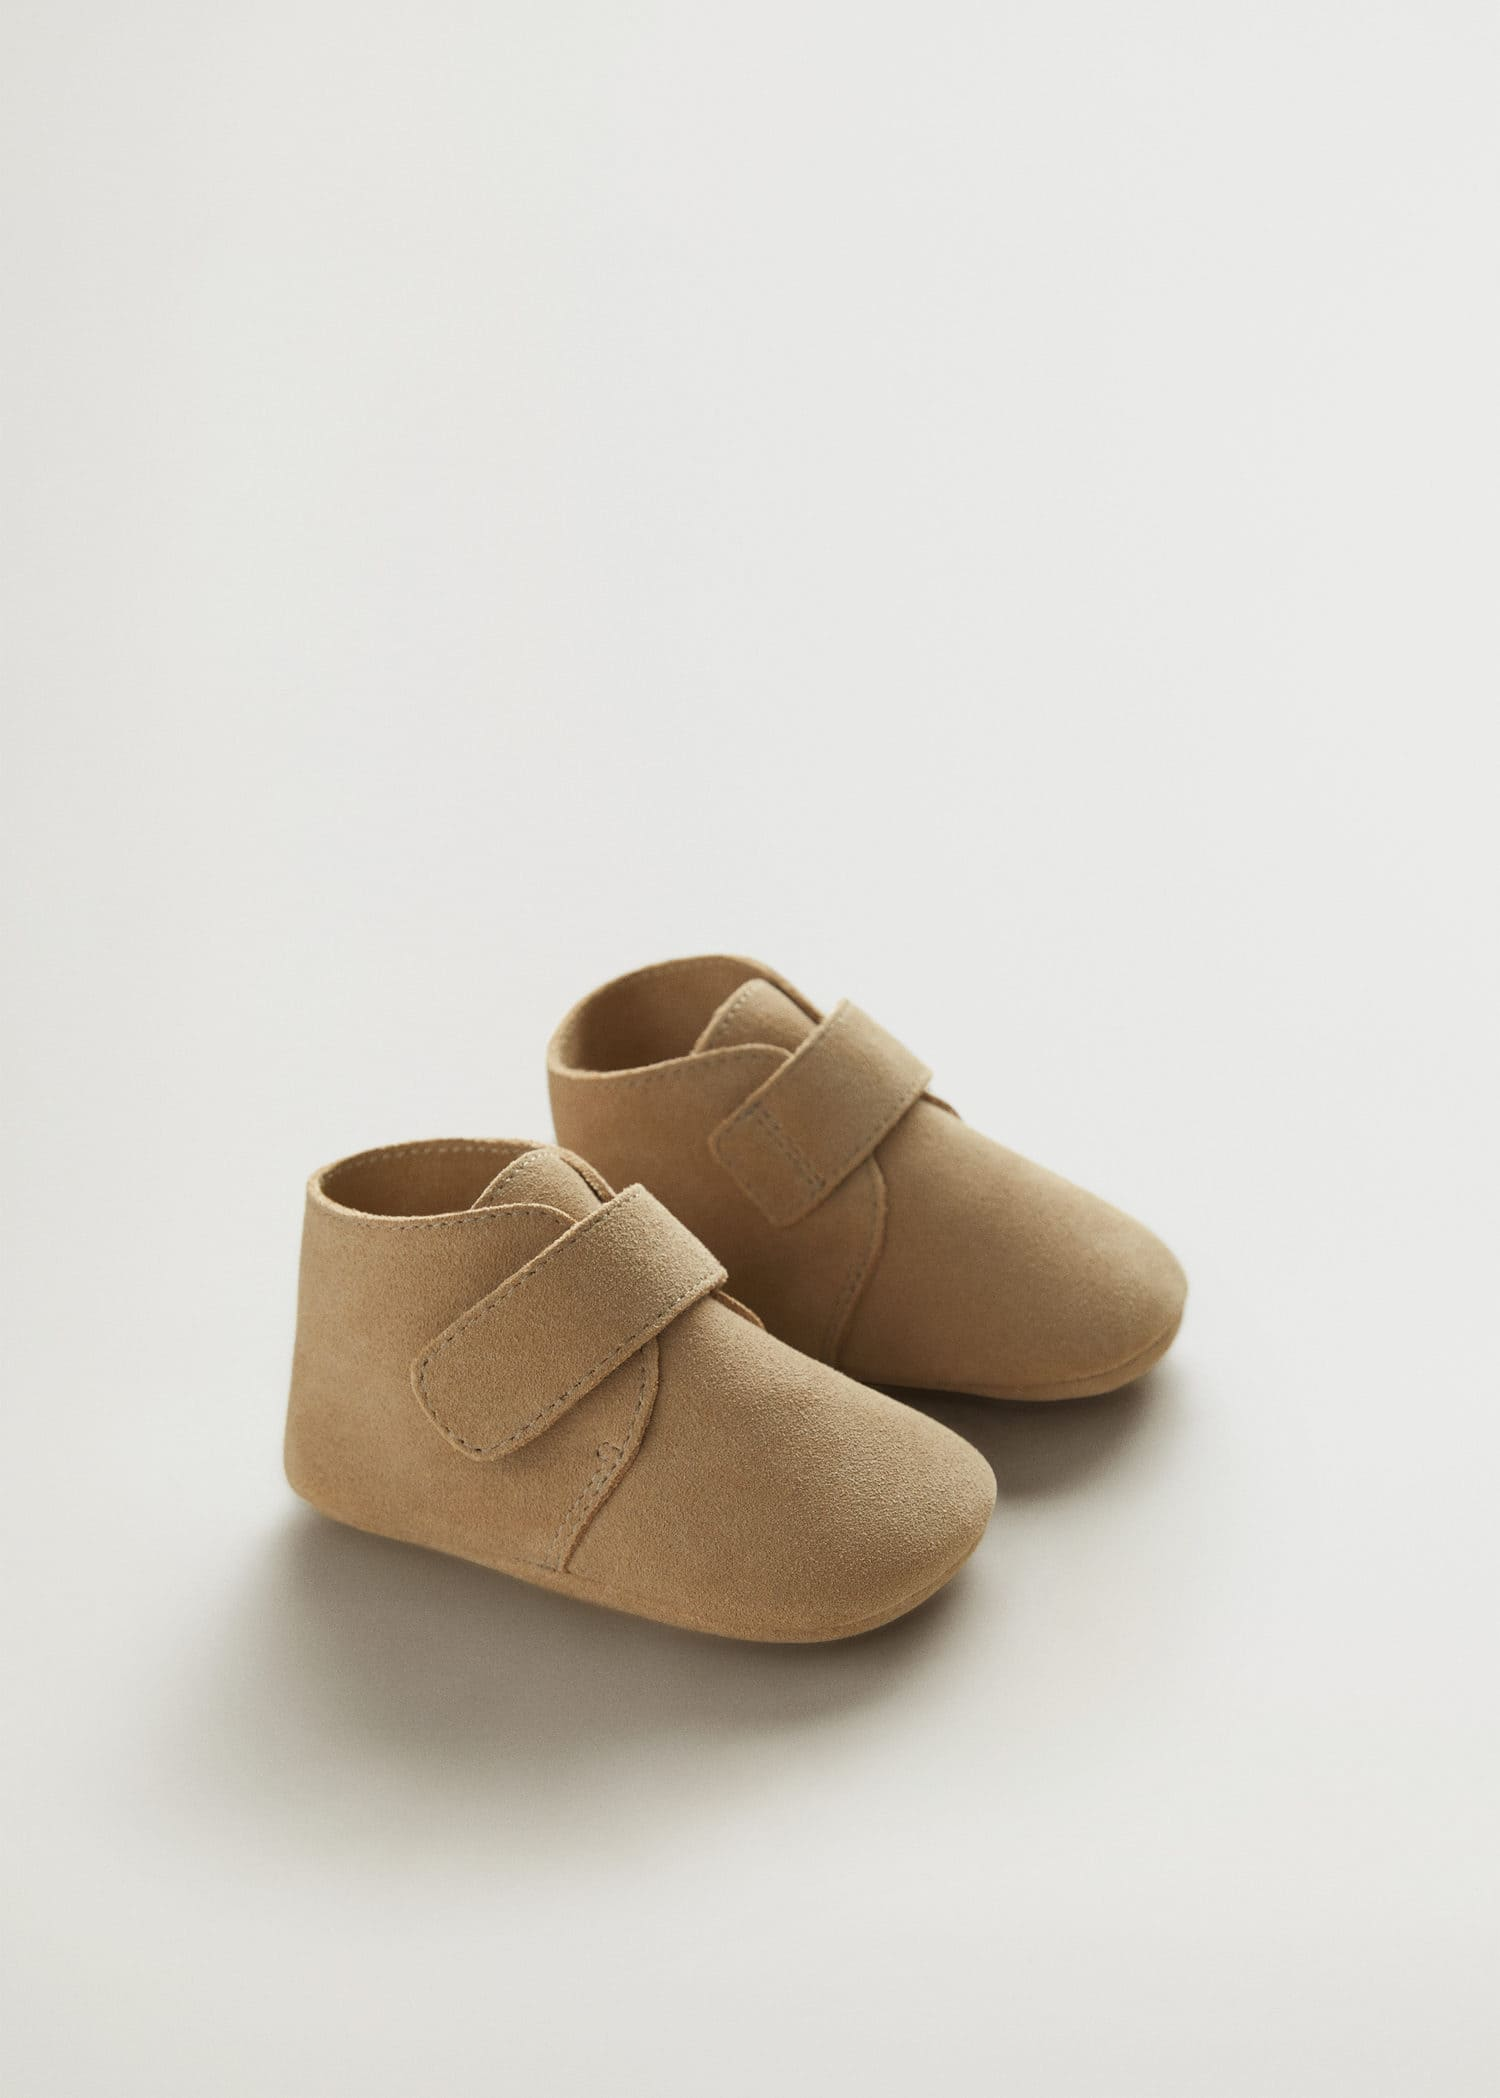 Shoes for Baby girls 2020 | Mango Kids